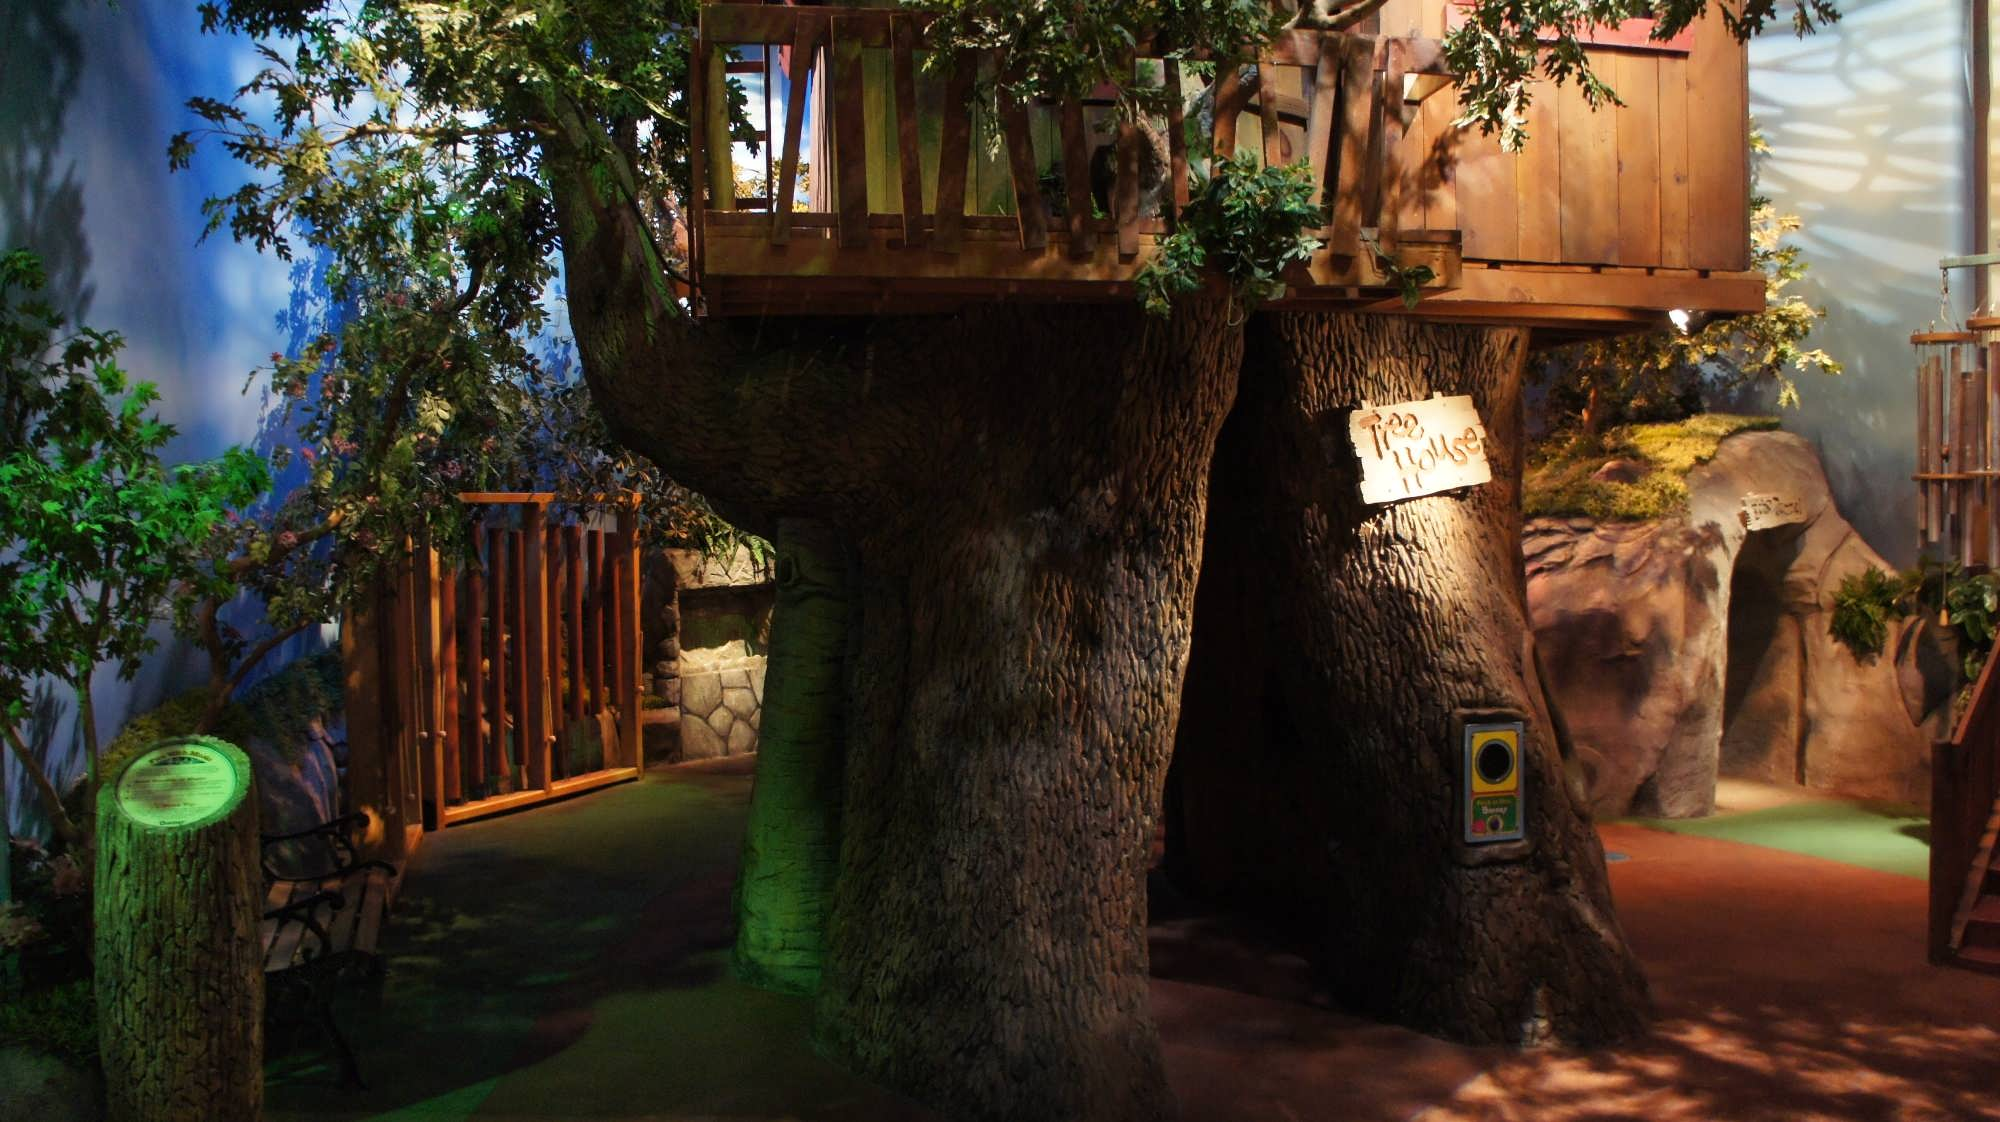 Barney's Backyard features this tree house and much more